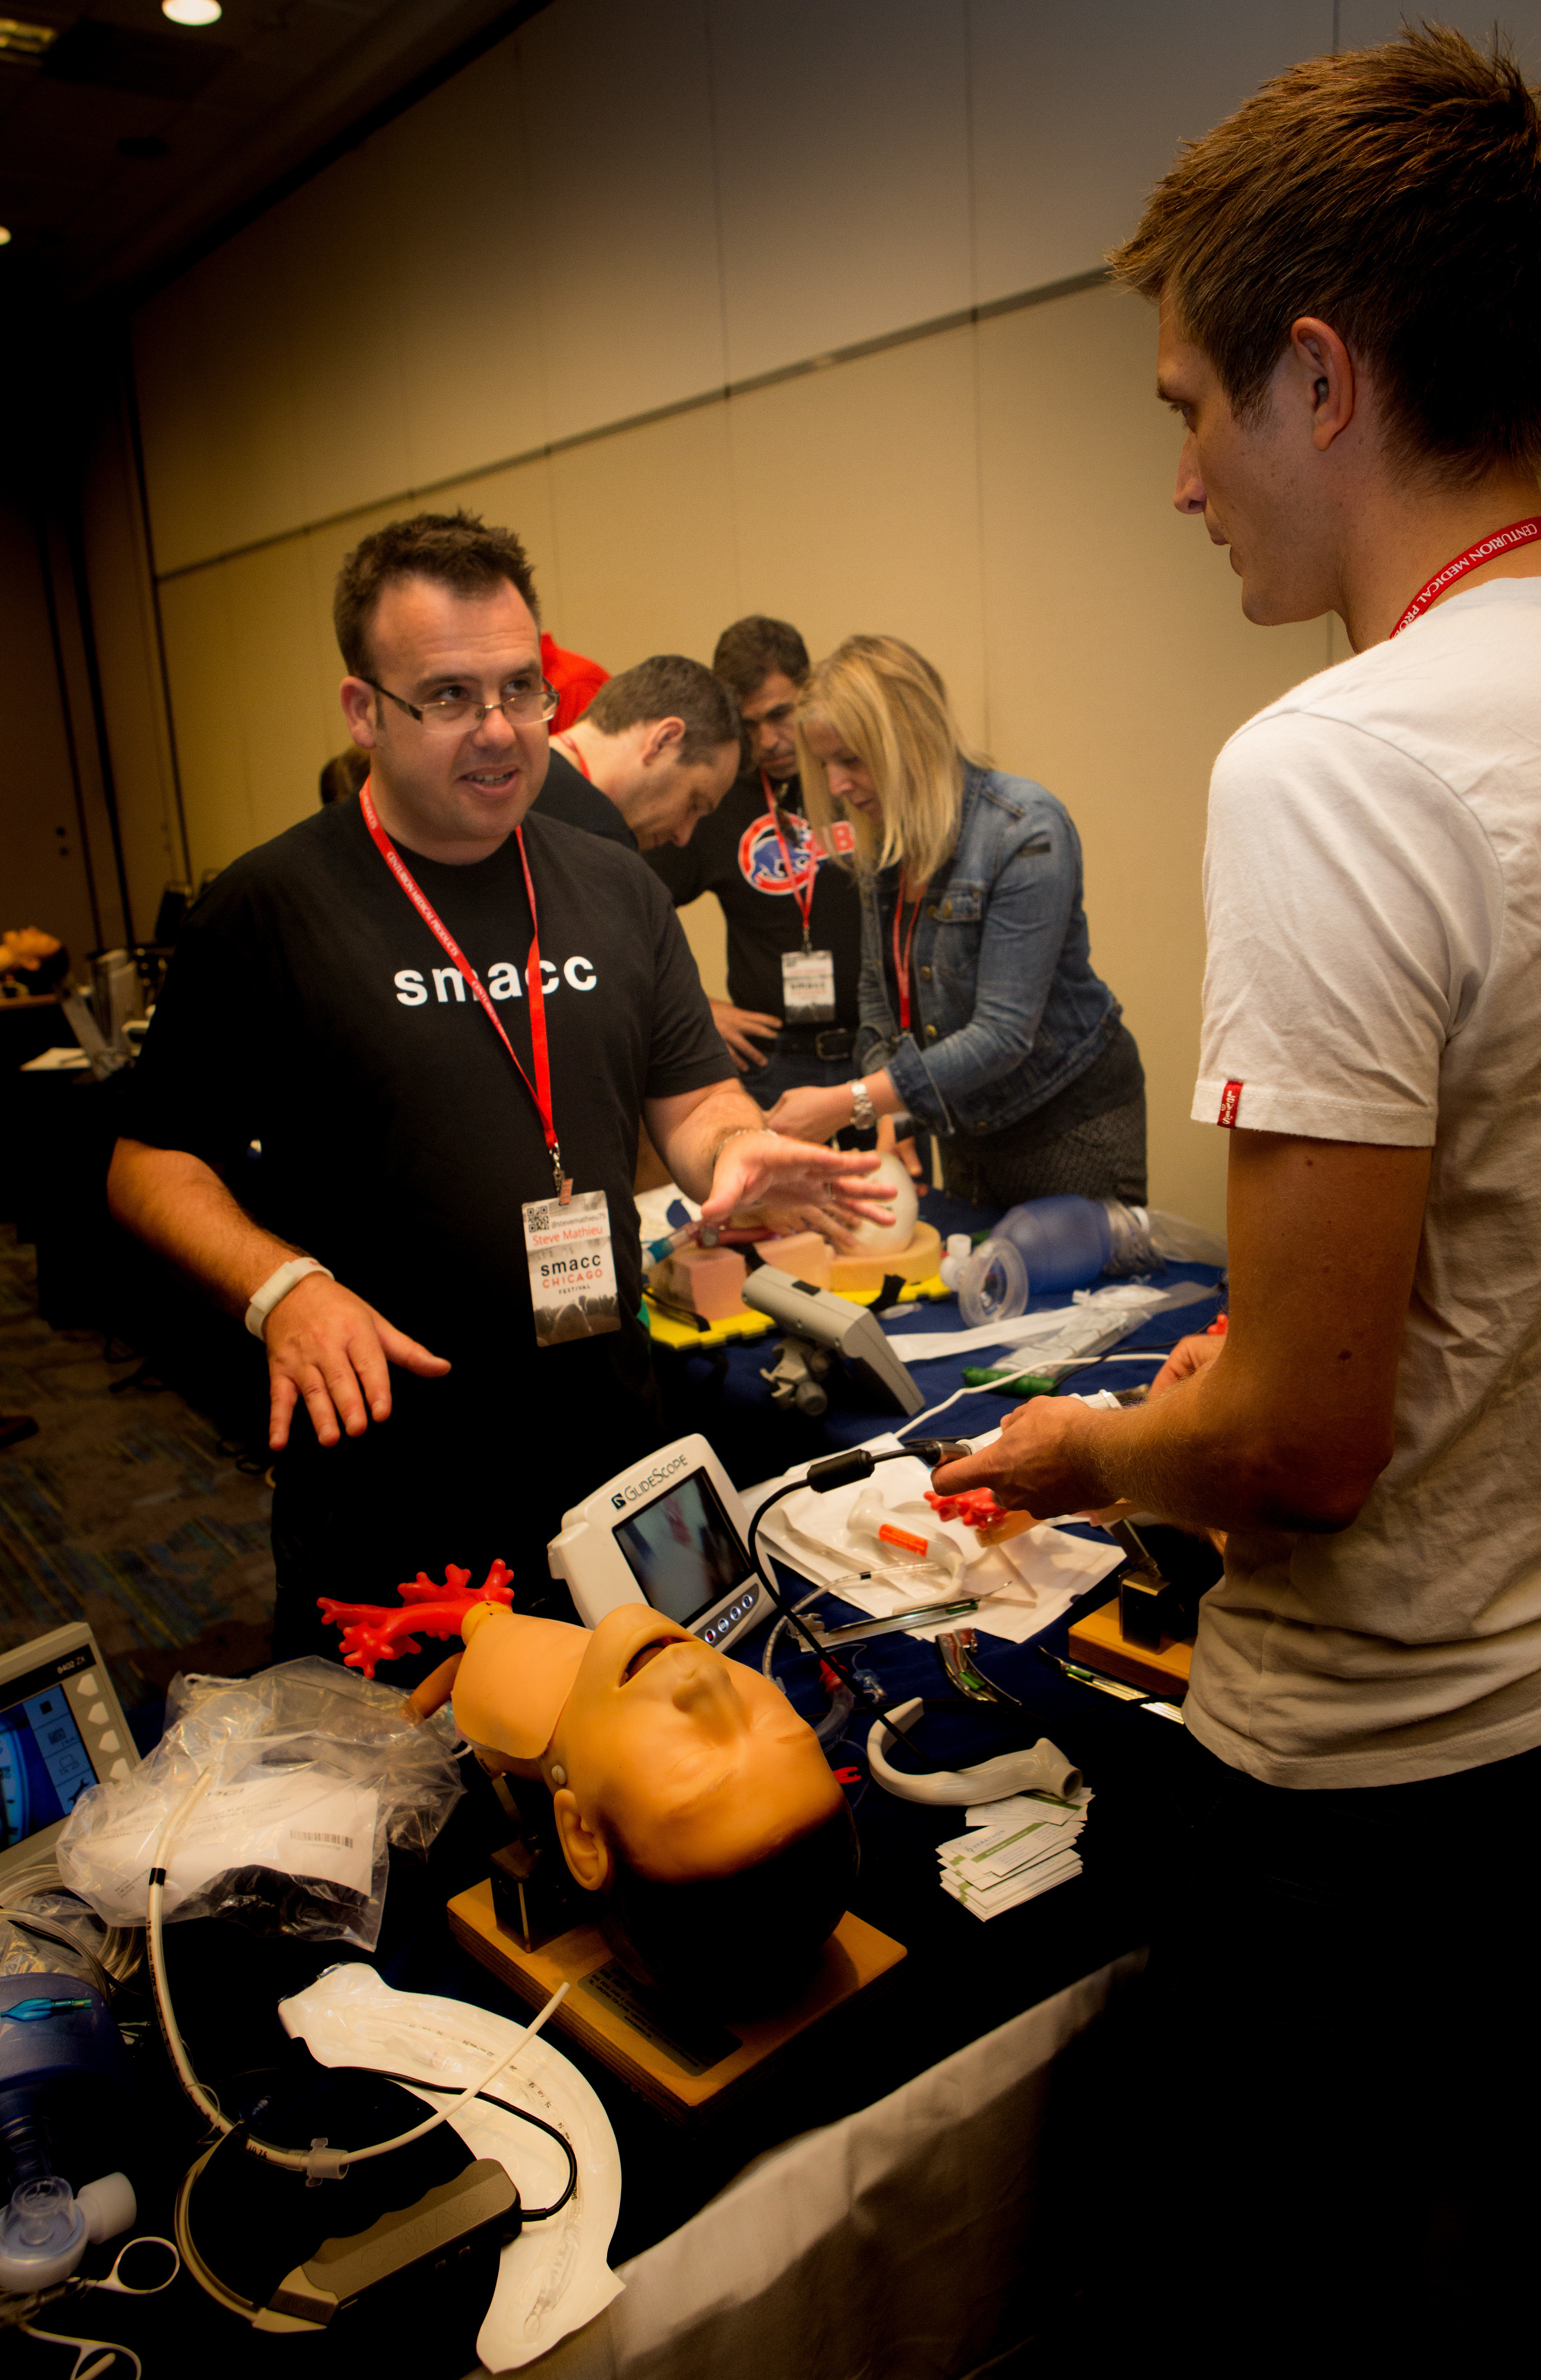 20150624-SMACC AirwayIMGL0341.jpg